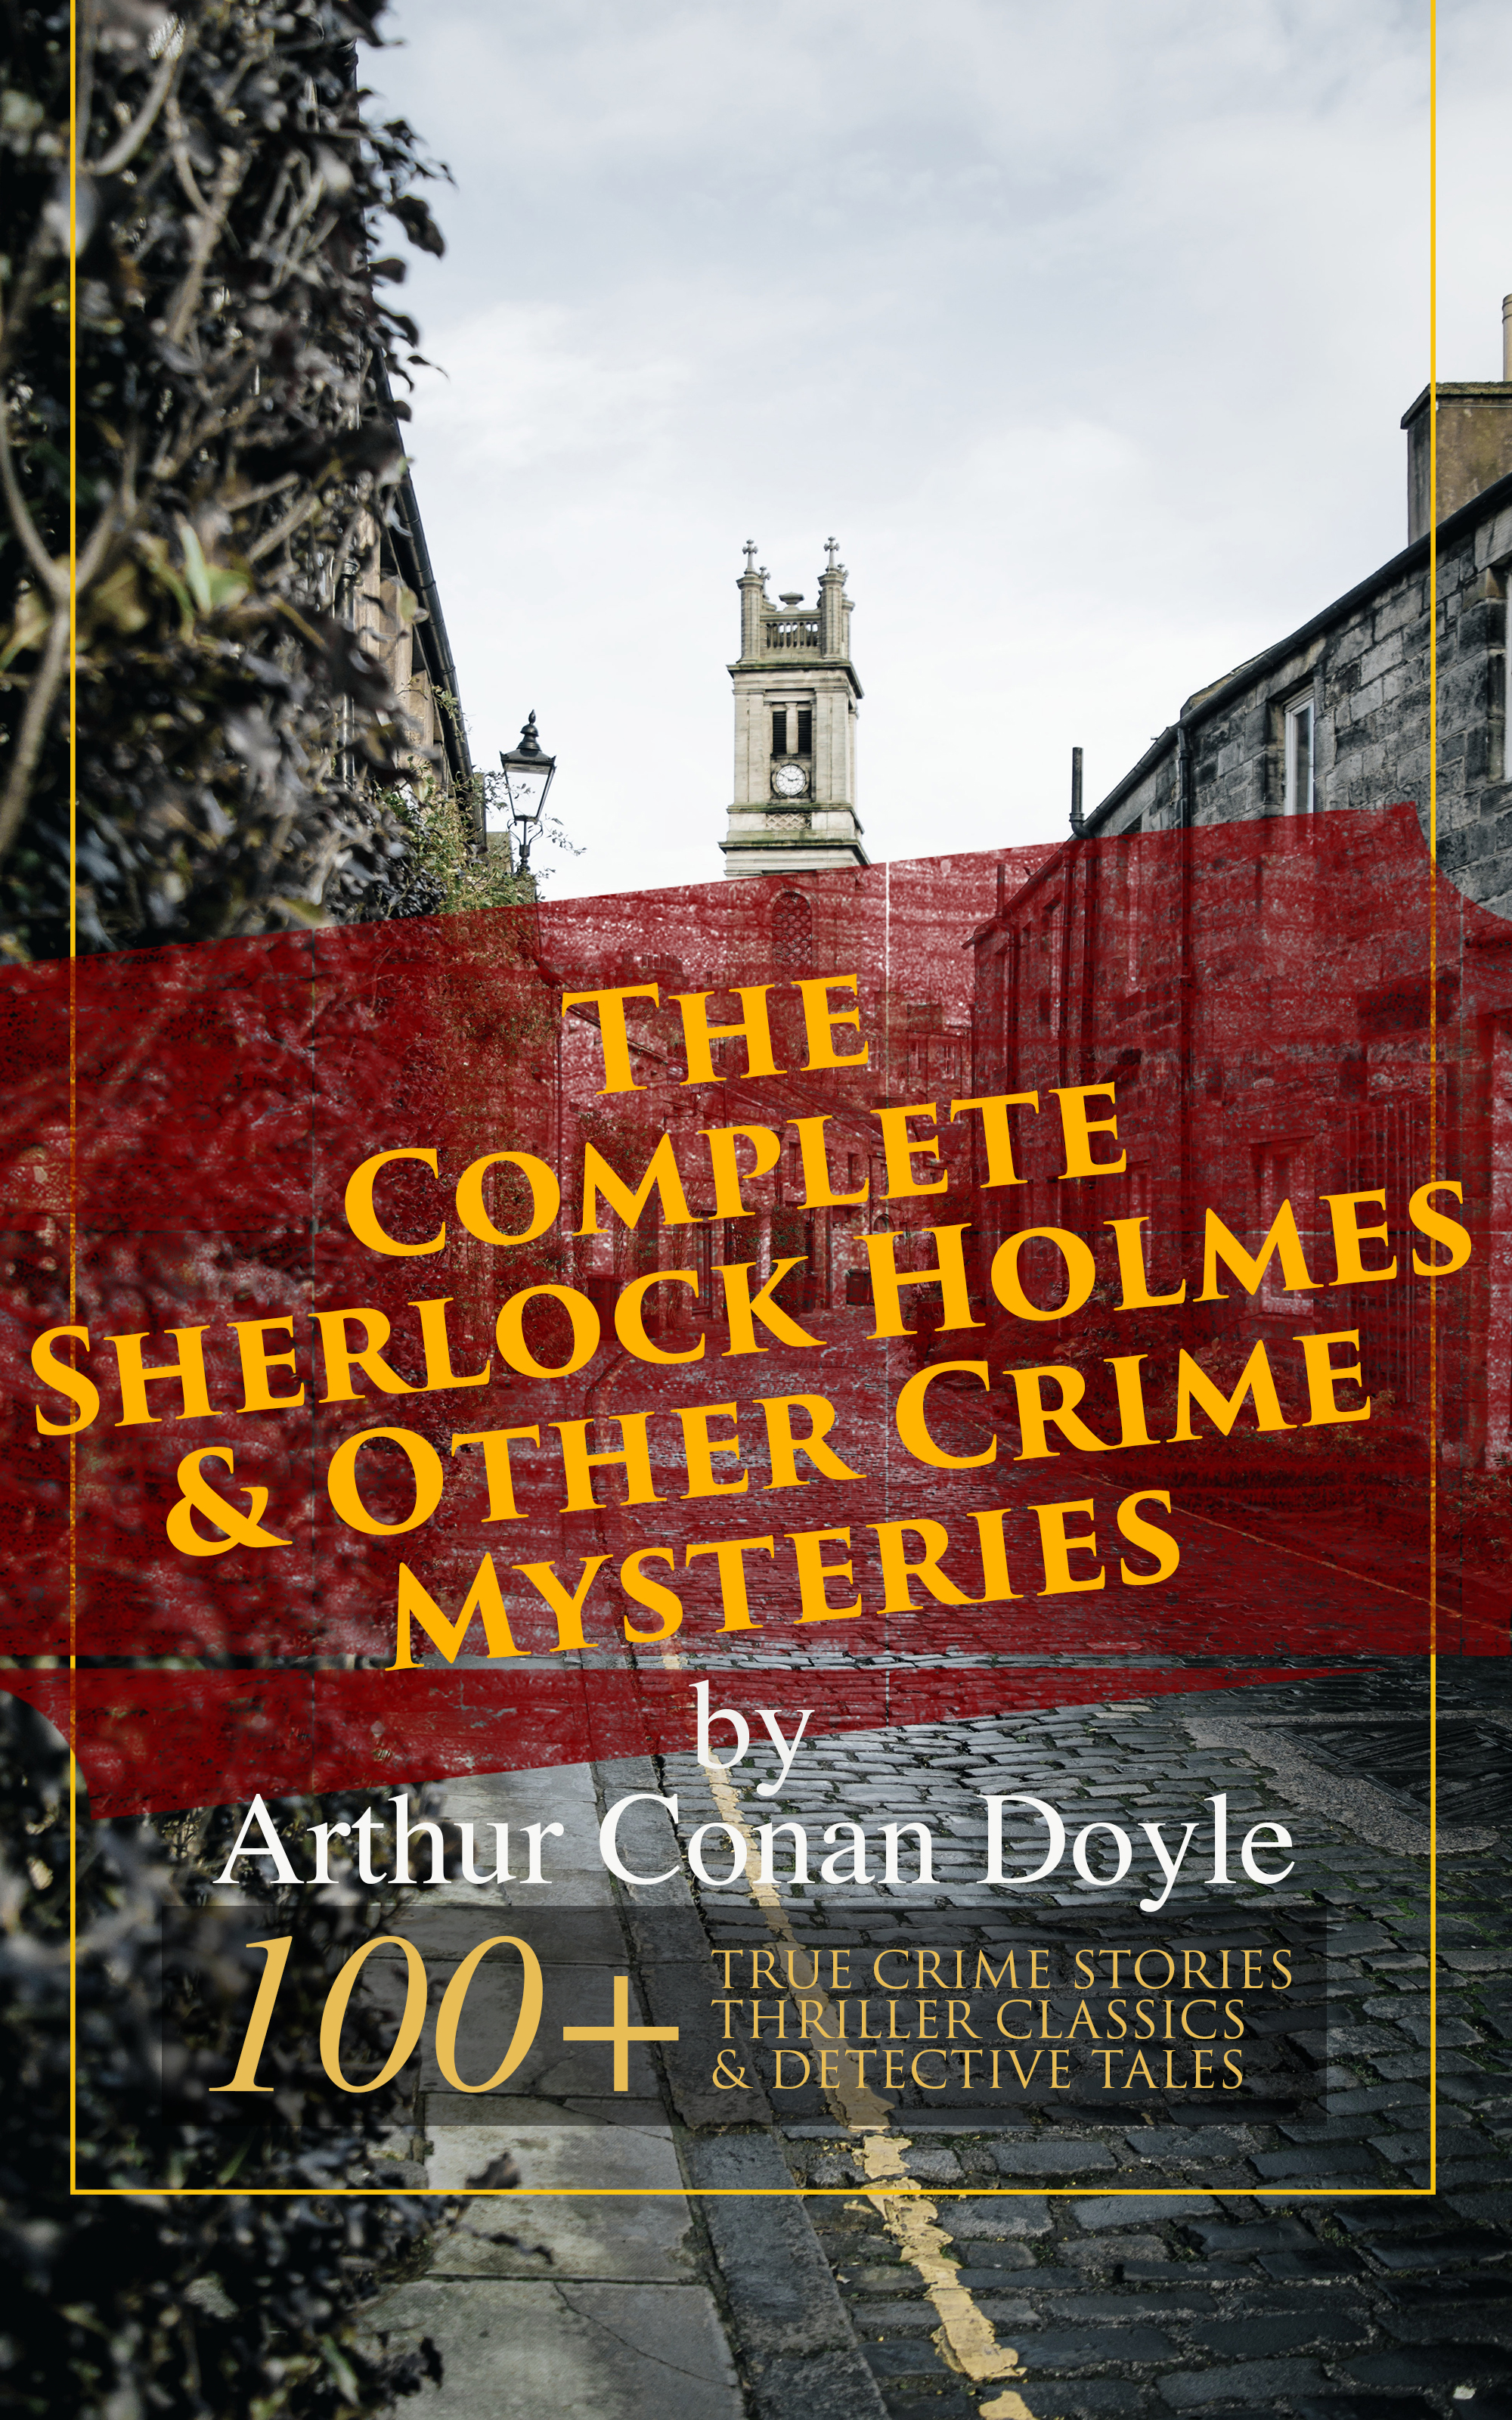 Arthur Conan Doyle The Complete Sherlock Holmes & Other Crime Mysteries by Arthur Conan Doyle: 100+ True Crime Stories, Thriller Classics & Detective Tales (Illustrated) doyle arthur conan the crime of the congo